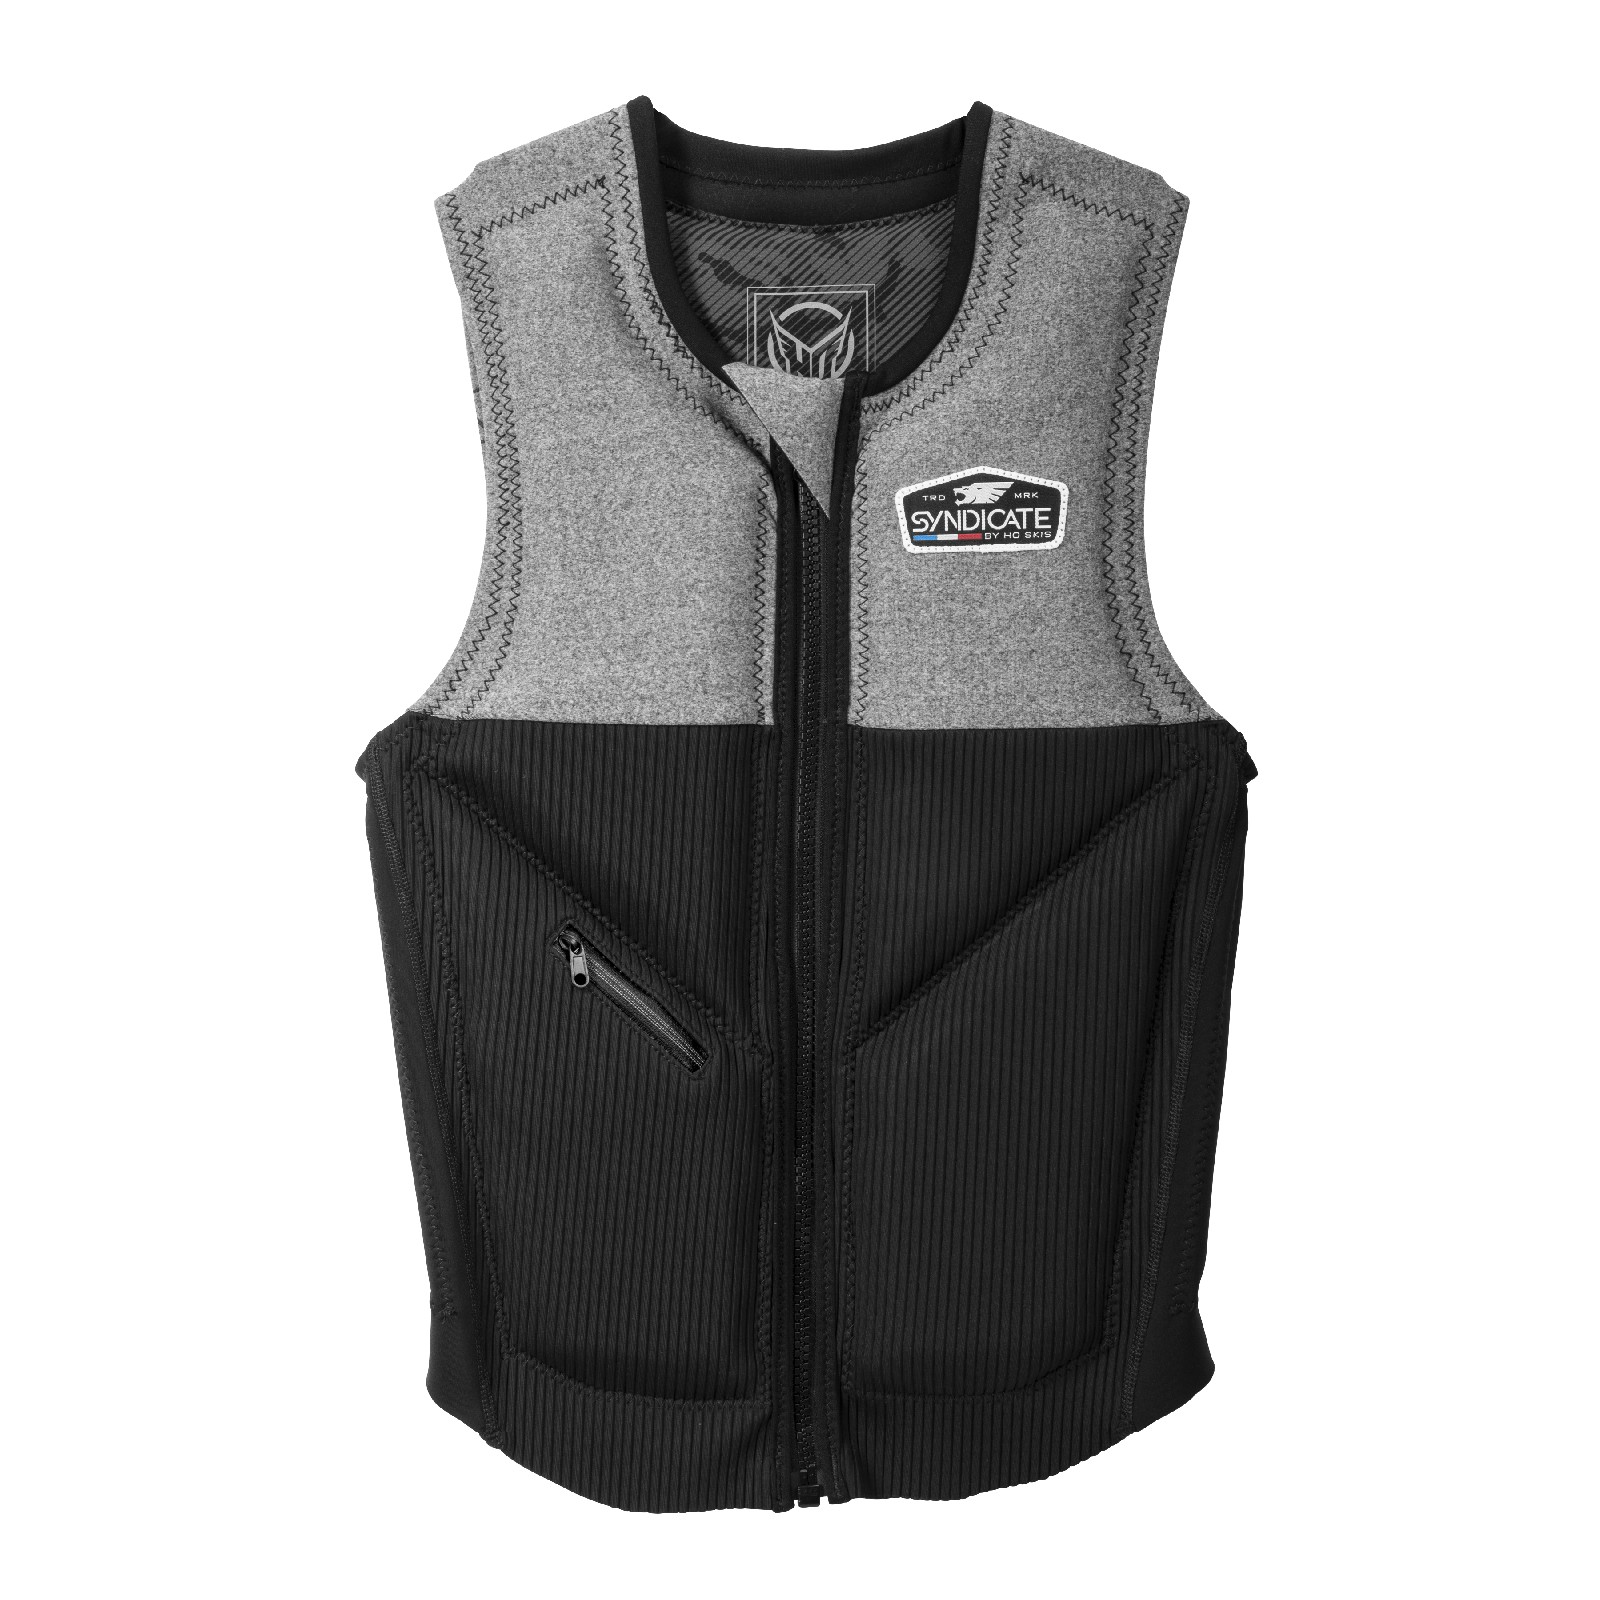 SYNDICATE LEGEND VEST HO SPORTS 2019